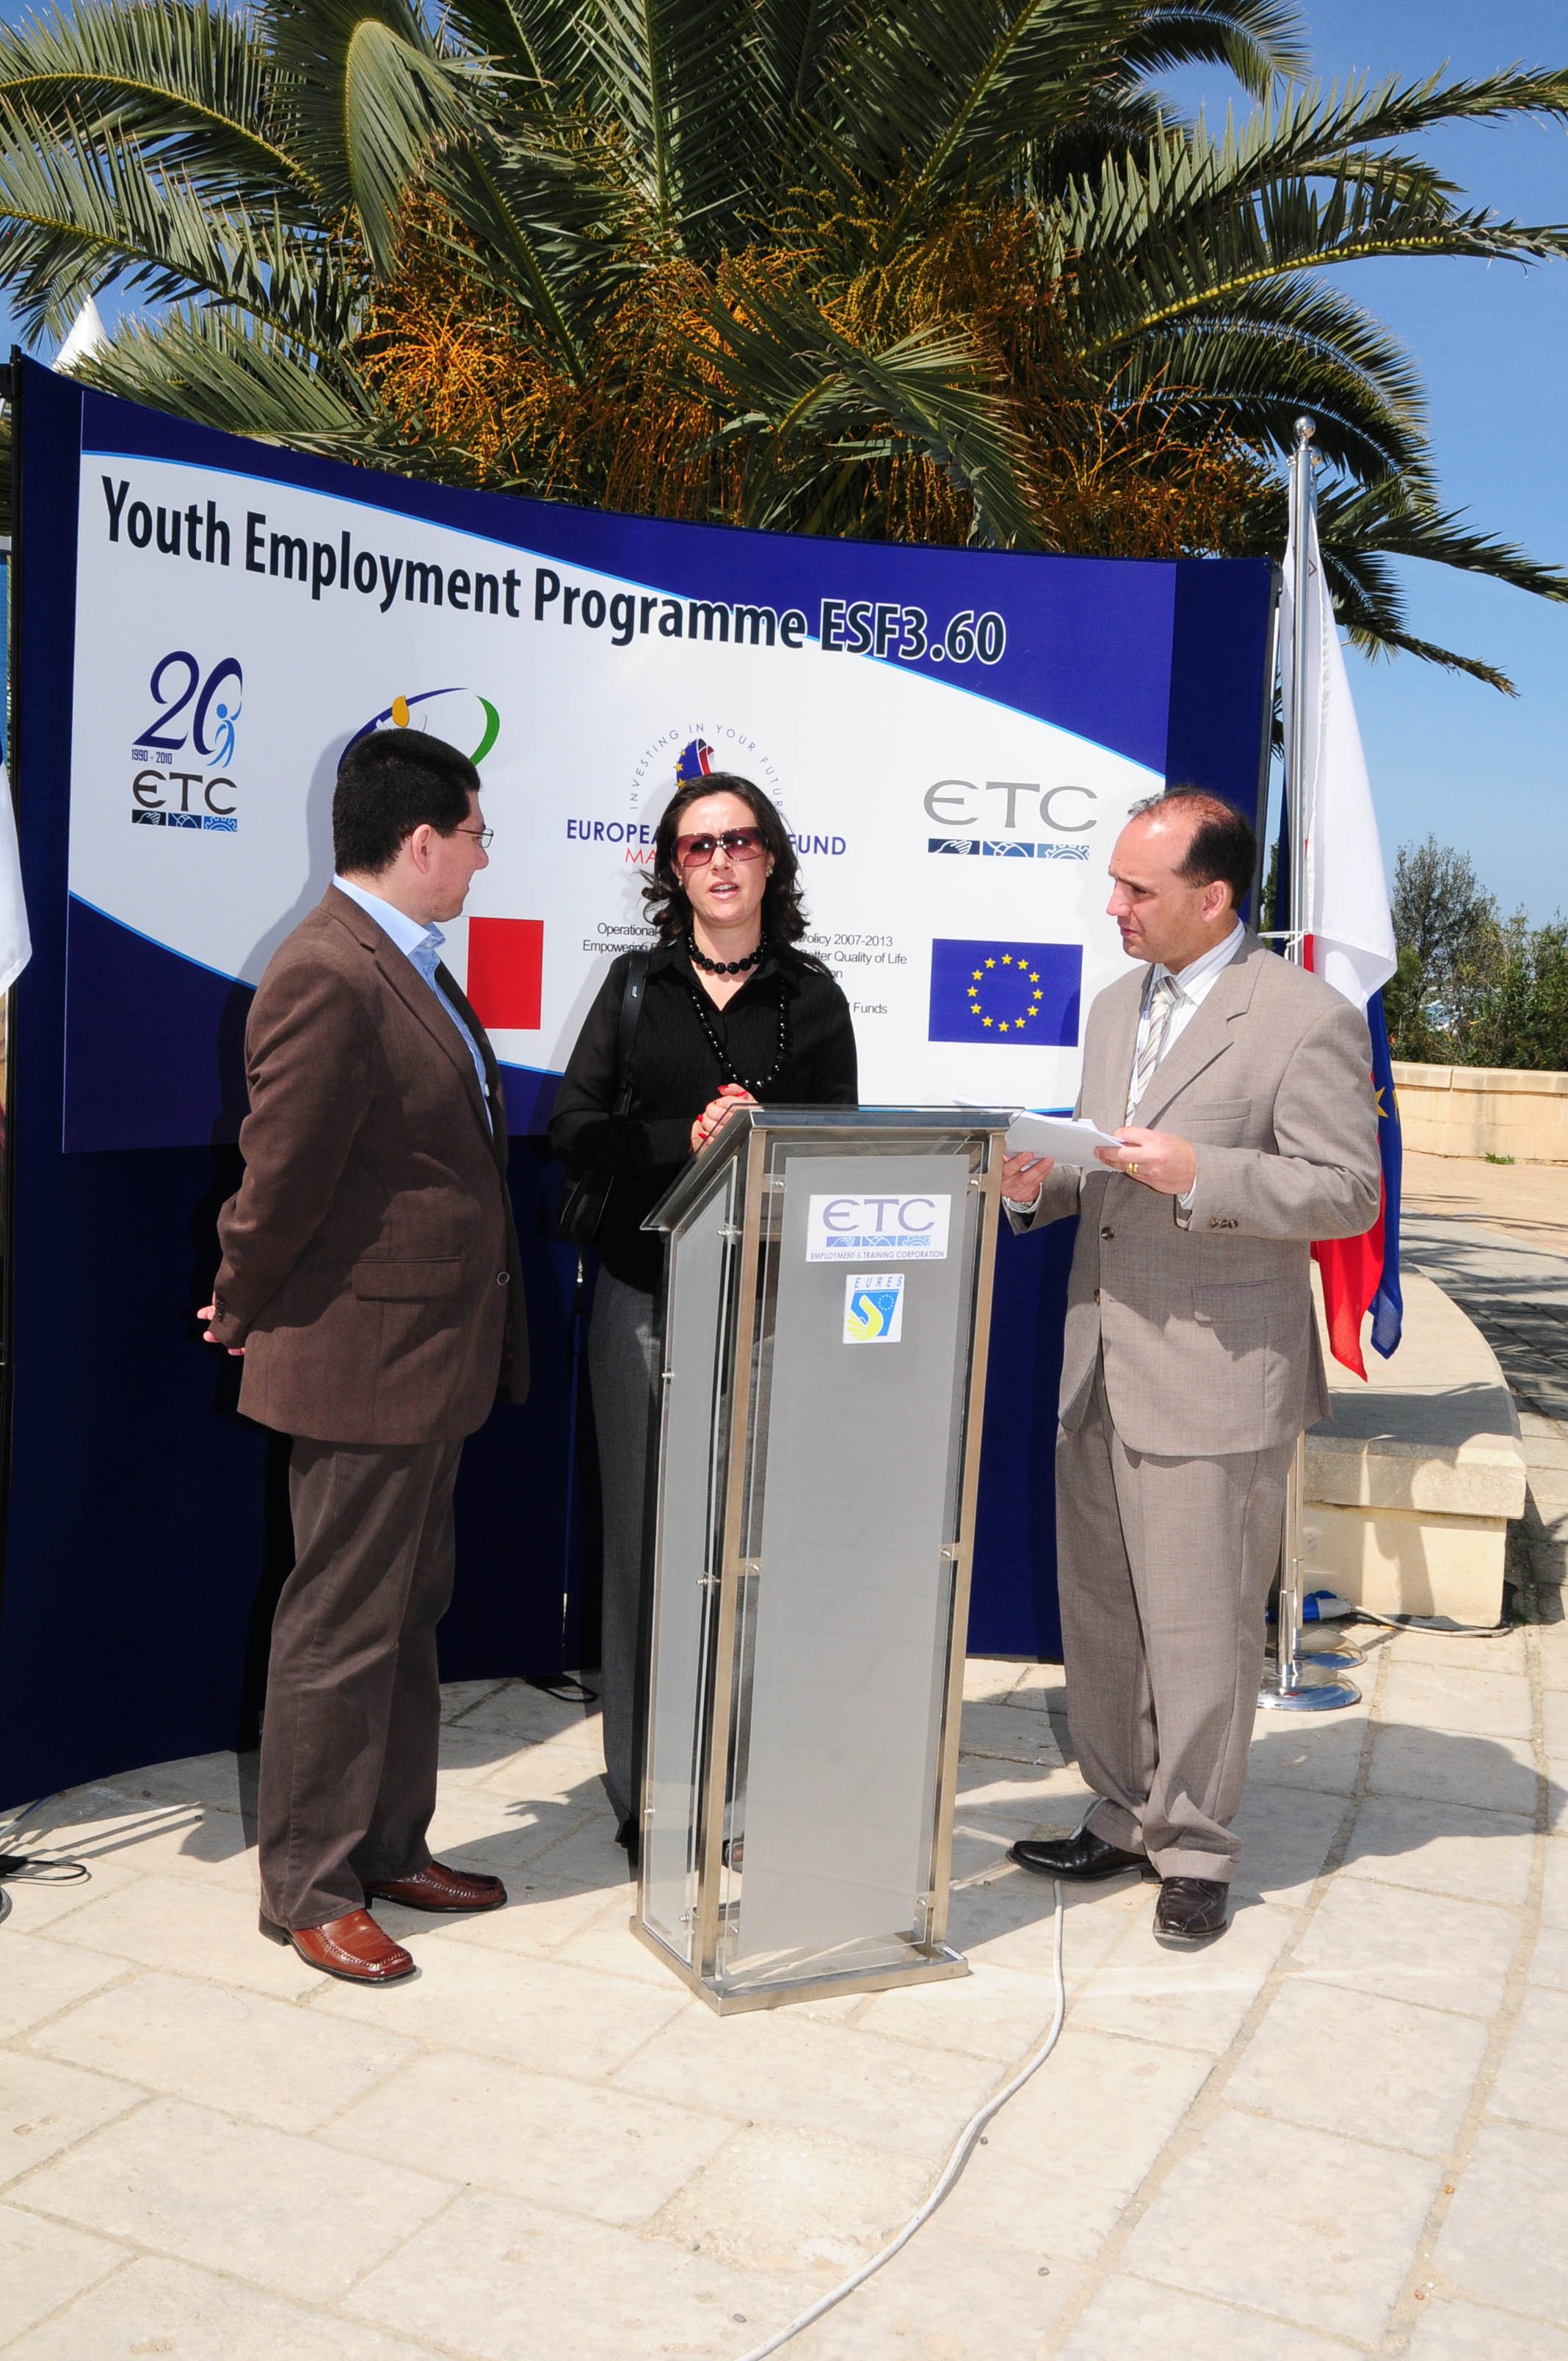 The ETC launches the ESF 3.60 YOUTH EMPLOYMENT PROGRAMME